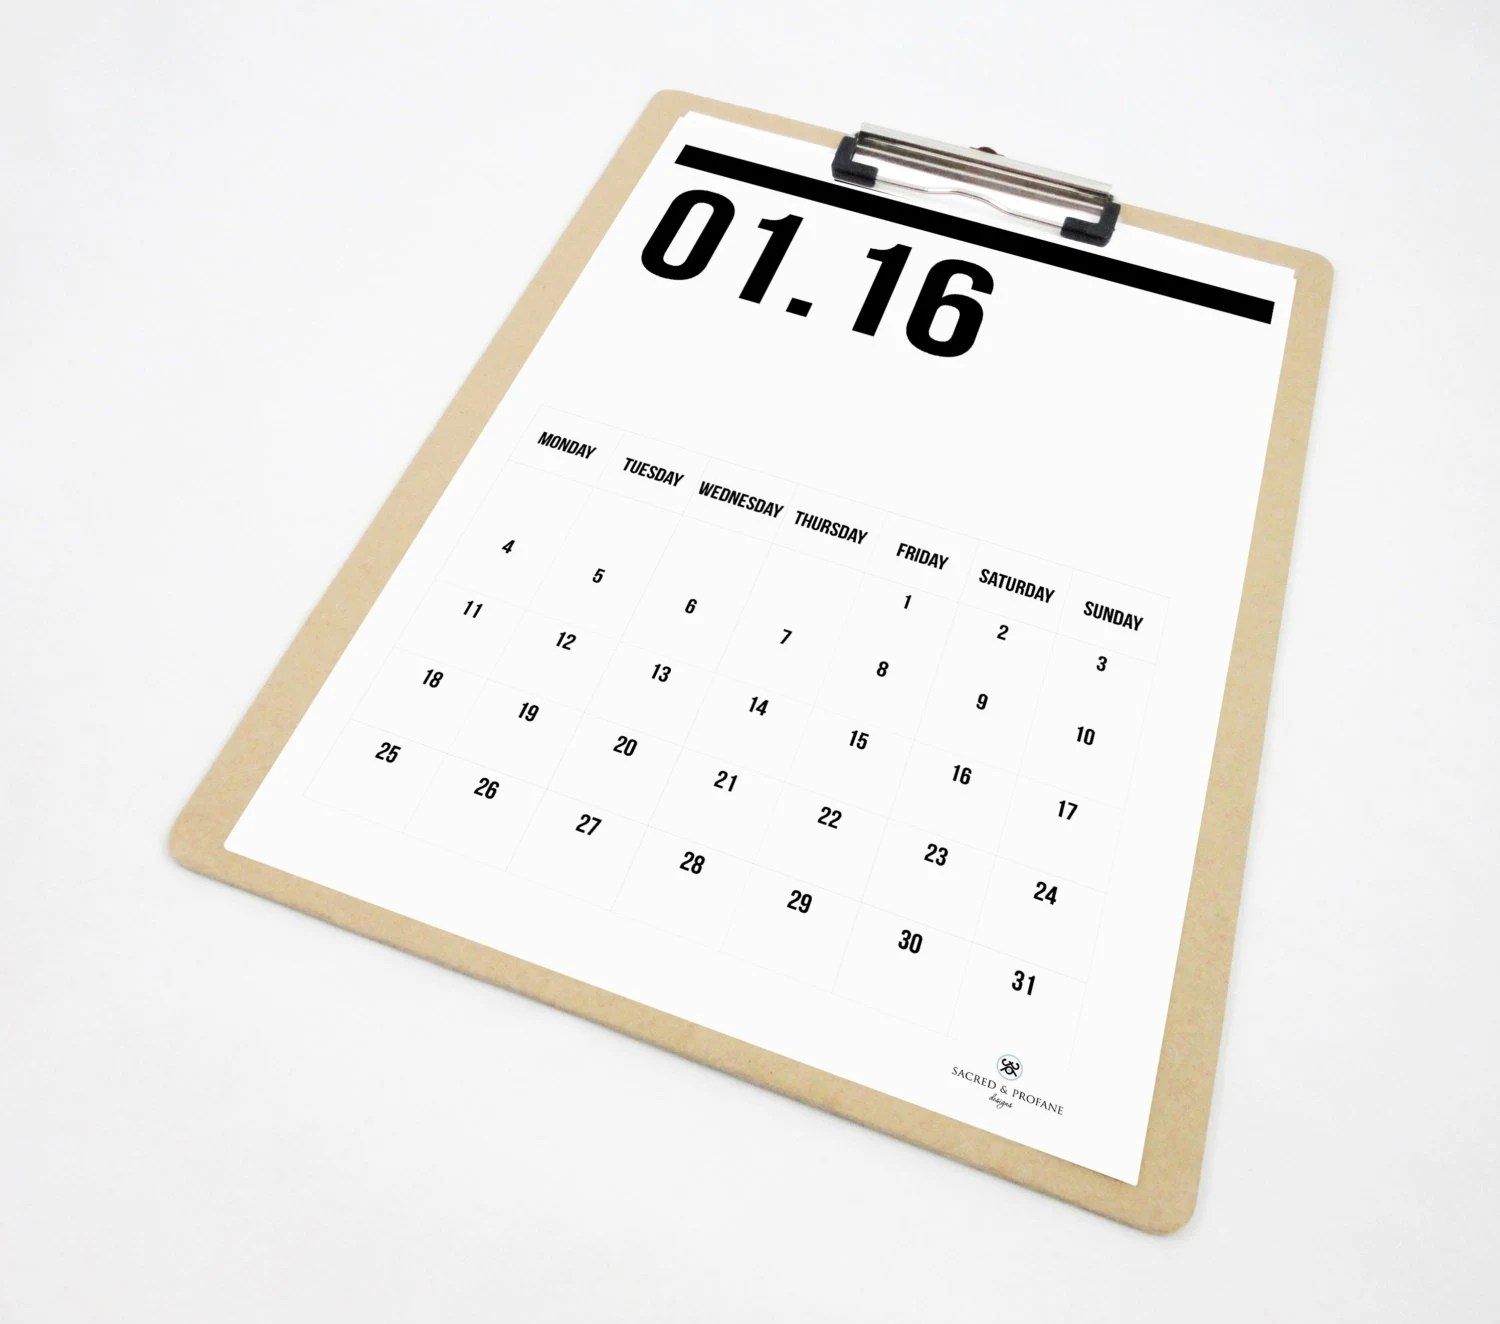 Calendar For Year 2017 United States Time And Date Just Numbers Monthly Printable Calendar For By